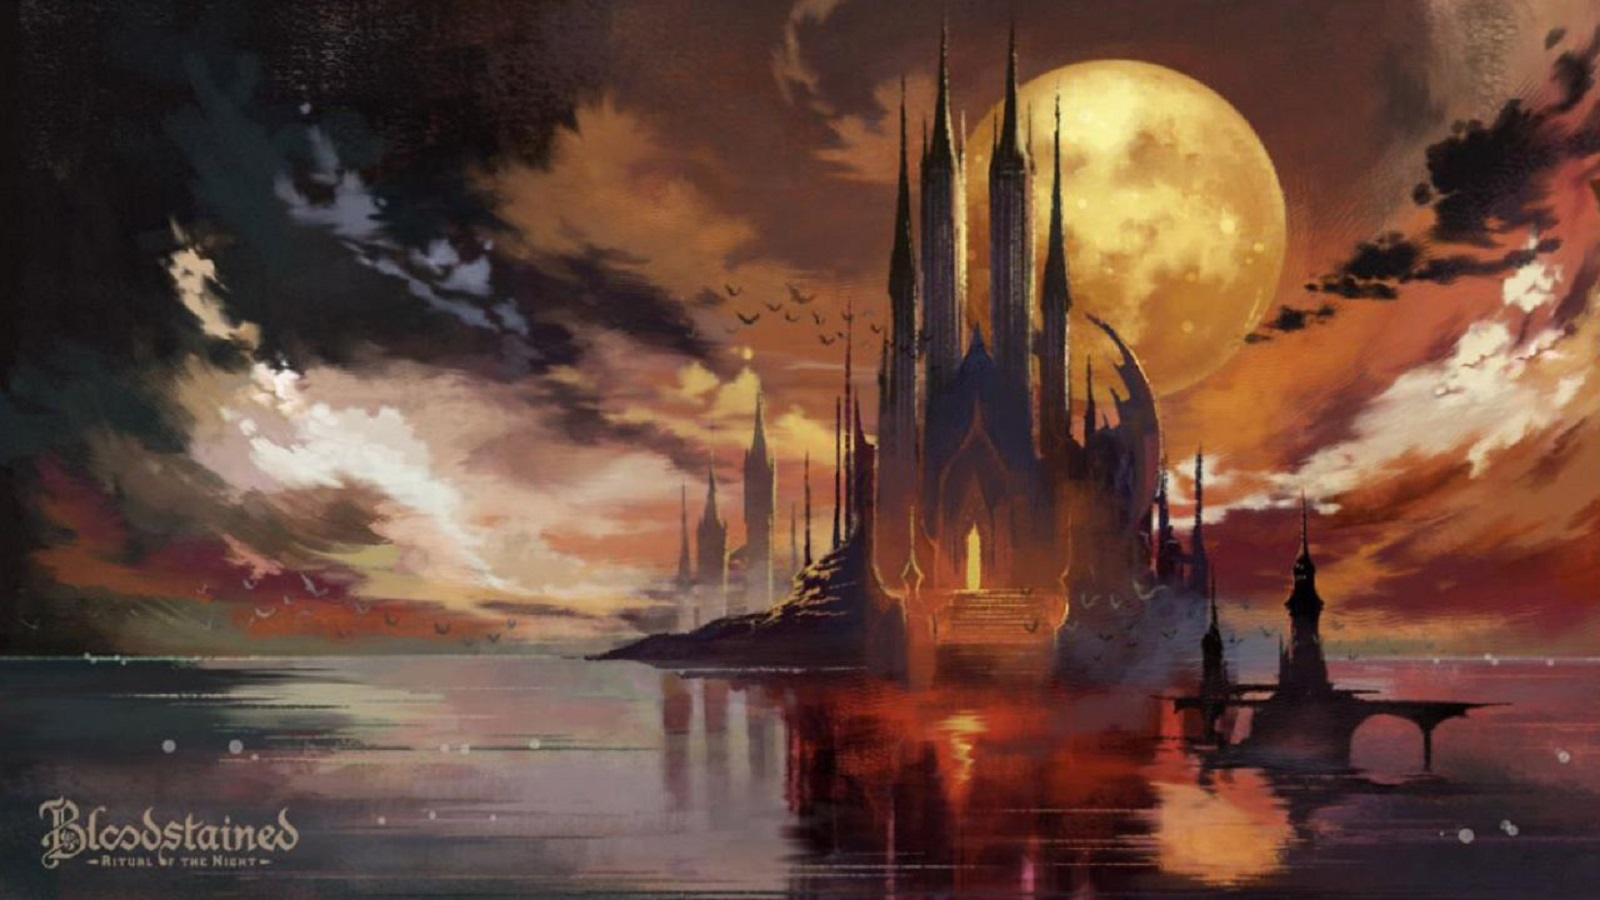 Bloodstained Ritual Of The Night Announced By Castlevania Creator